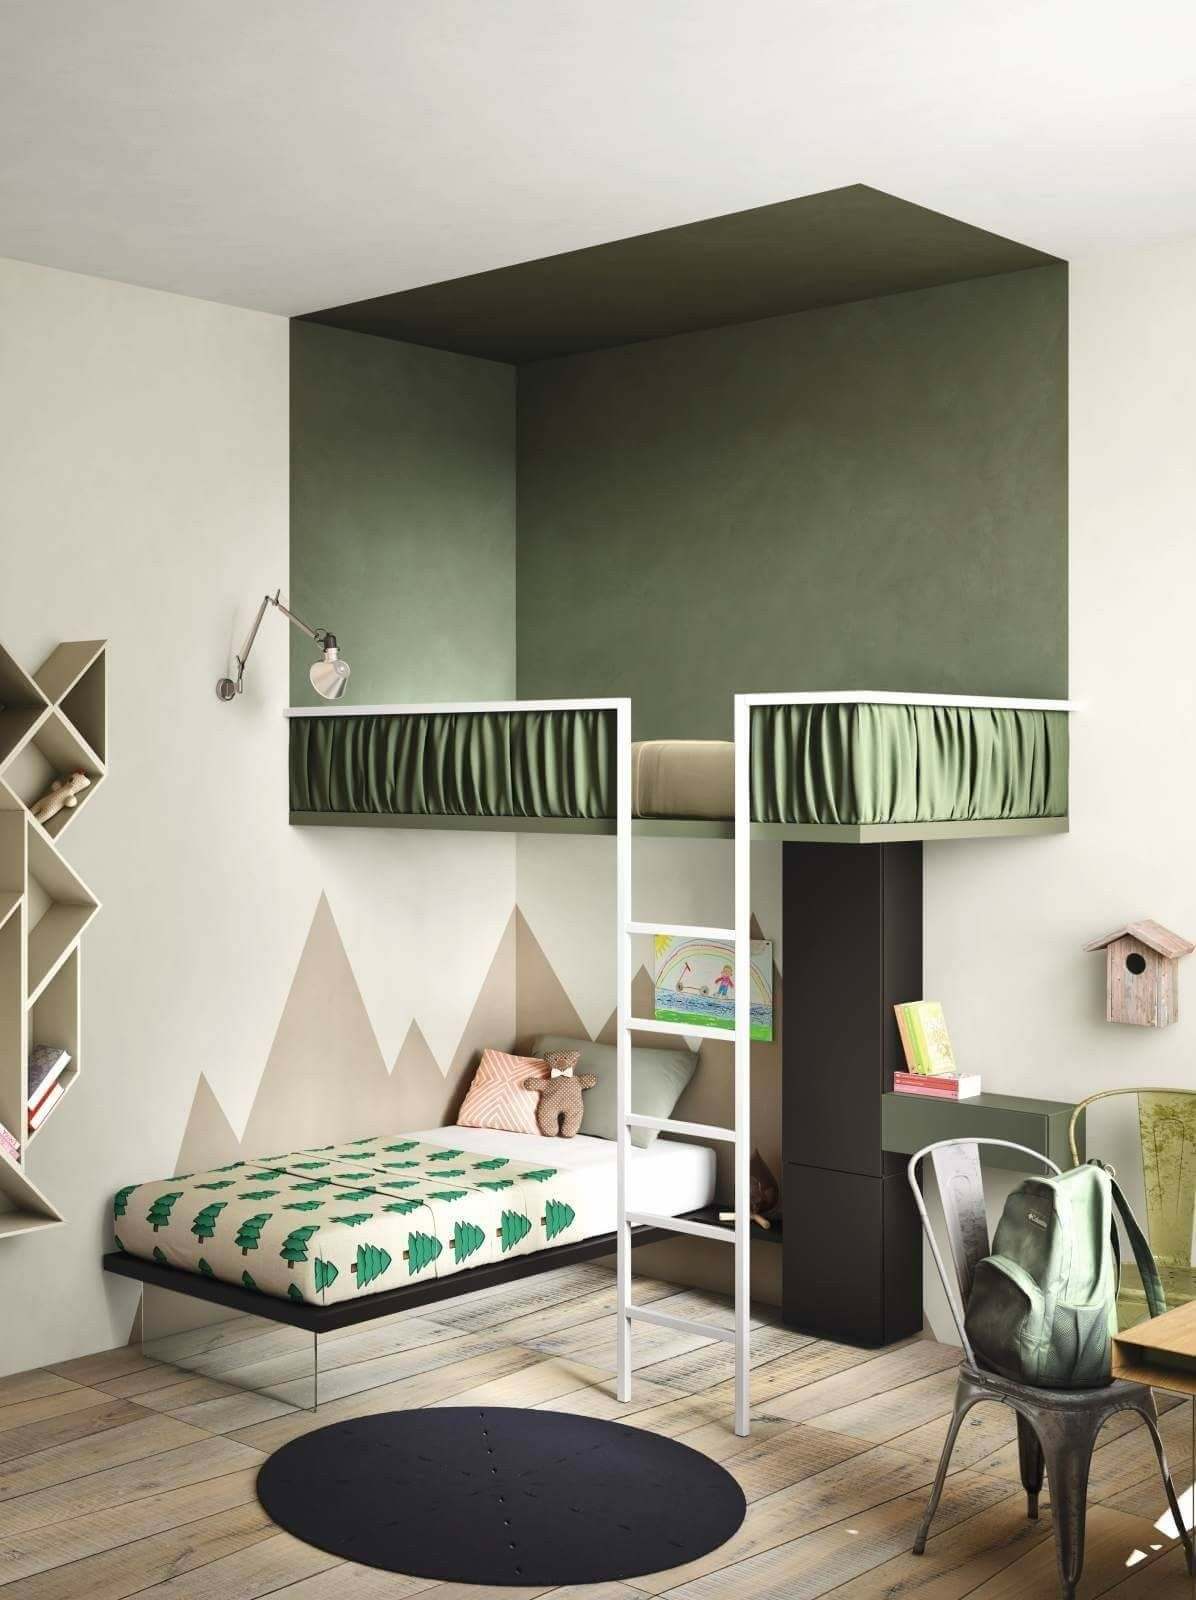 stair drawersbed shelvesloft deskbag closetloft bedsbunk bed railloft bed desk